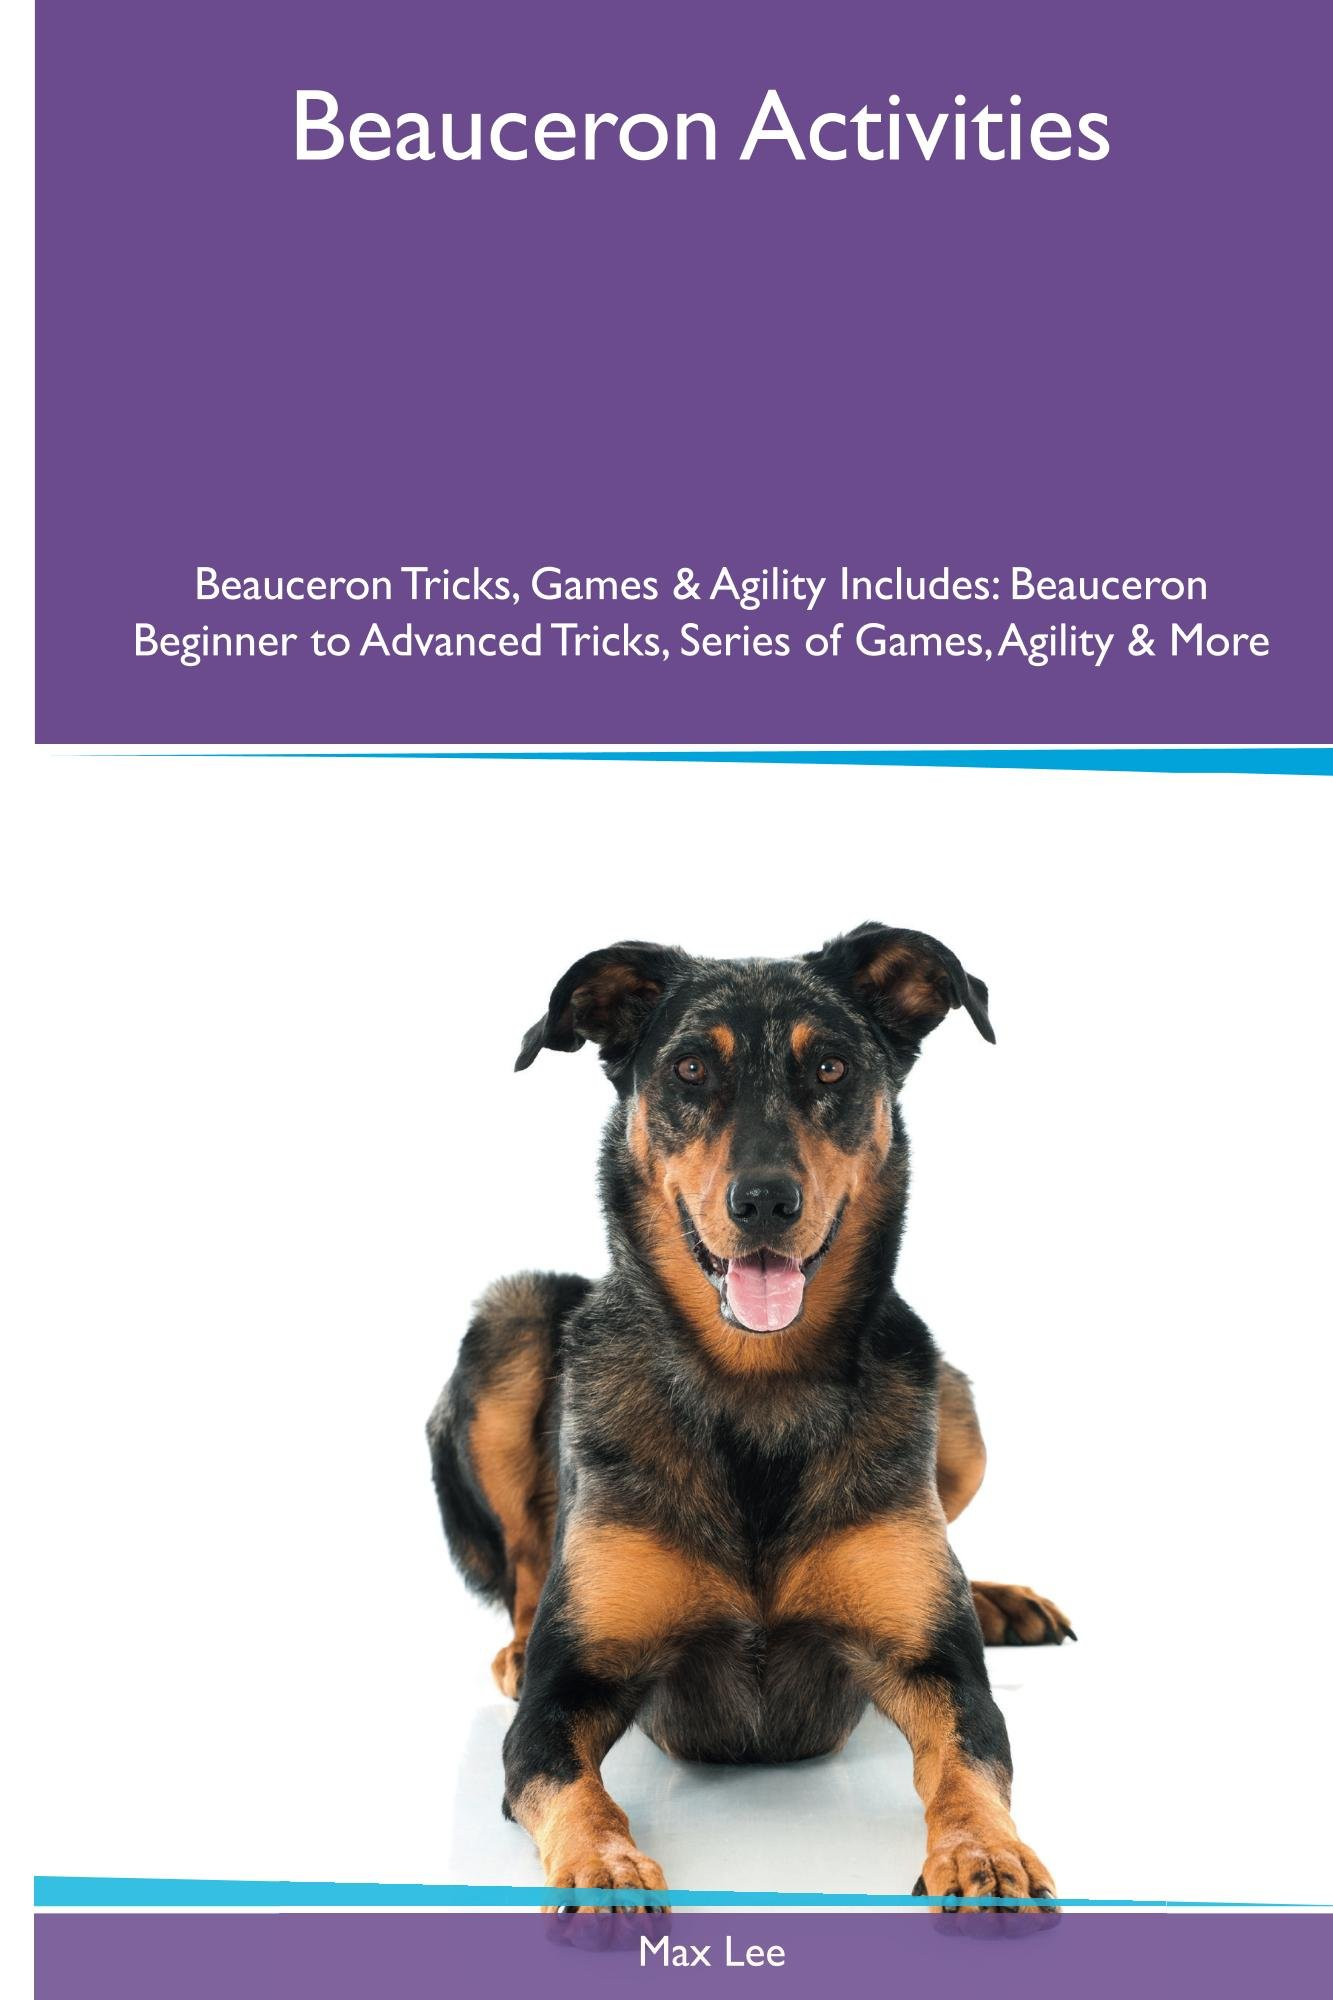 Beauceron Activities Beauceron Tricks, Games & Agility. Includes: Beauceron Beginner to Advanced Tricks, Series of Games, Agility and More